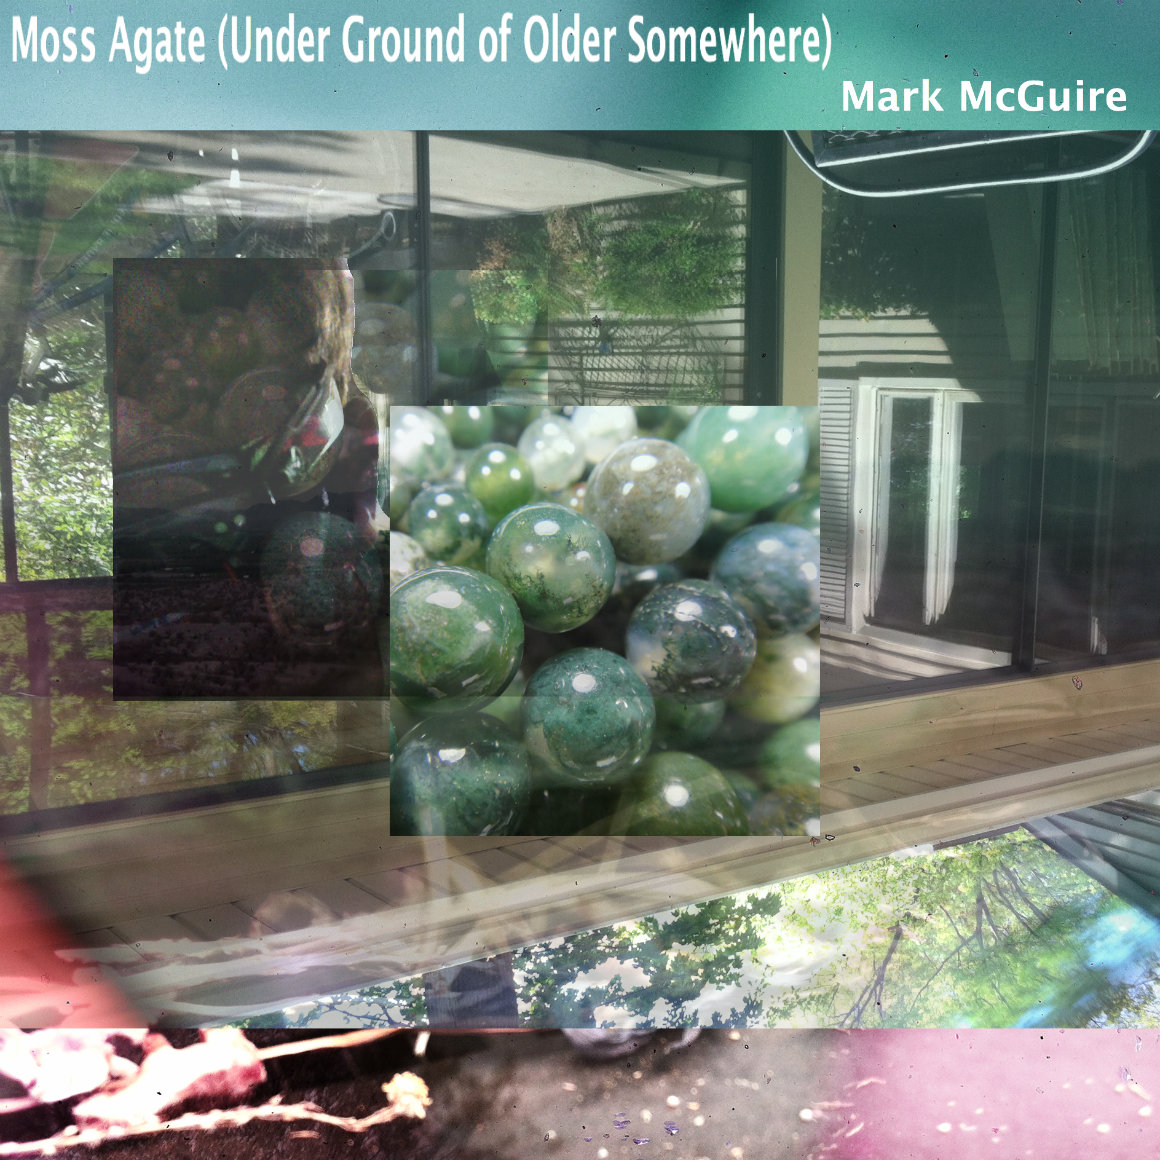 Mark McGuire - Moss Agate (Under Ground of Older Somewhere)